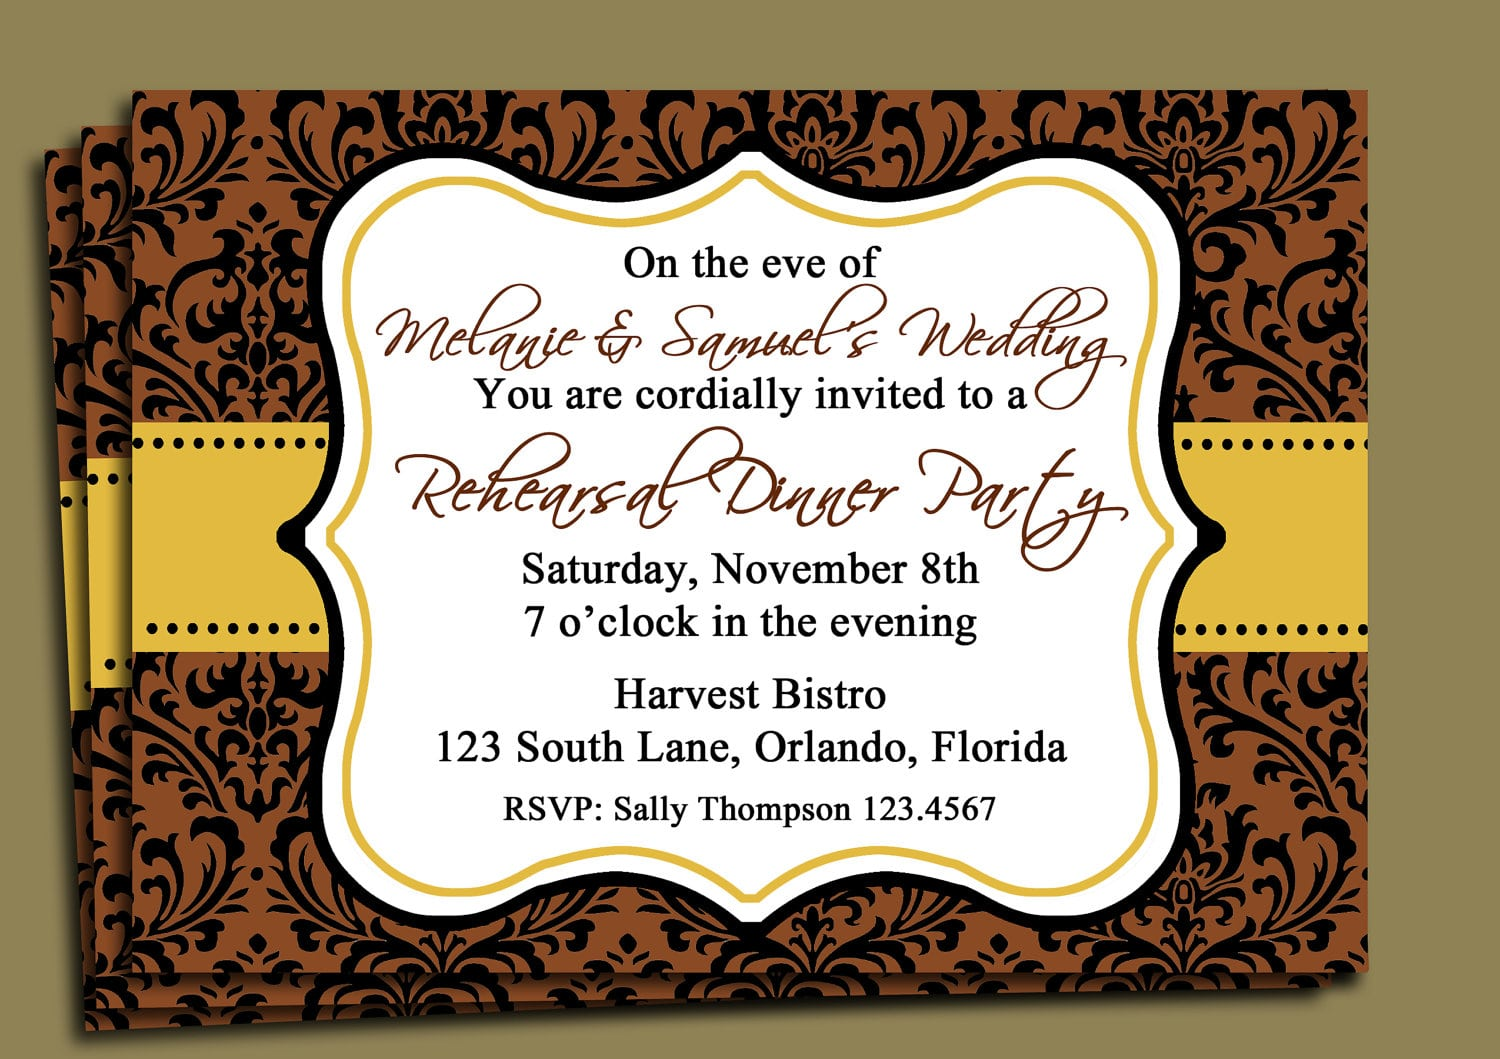 Blog - Page 126 of 380 - Mickey Mouse Invitations Templates